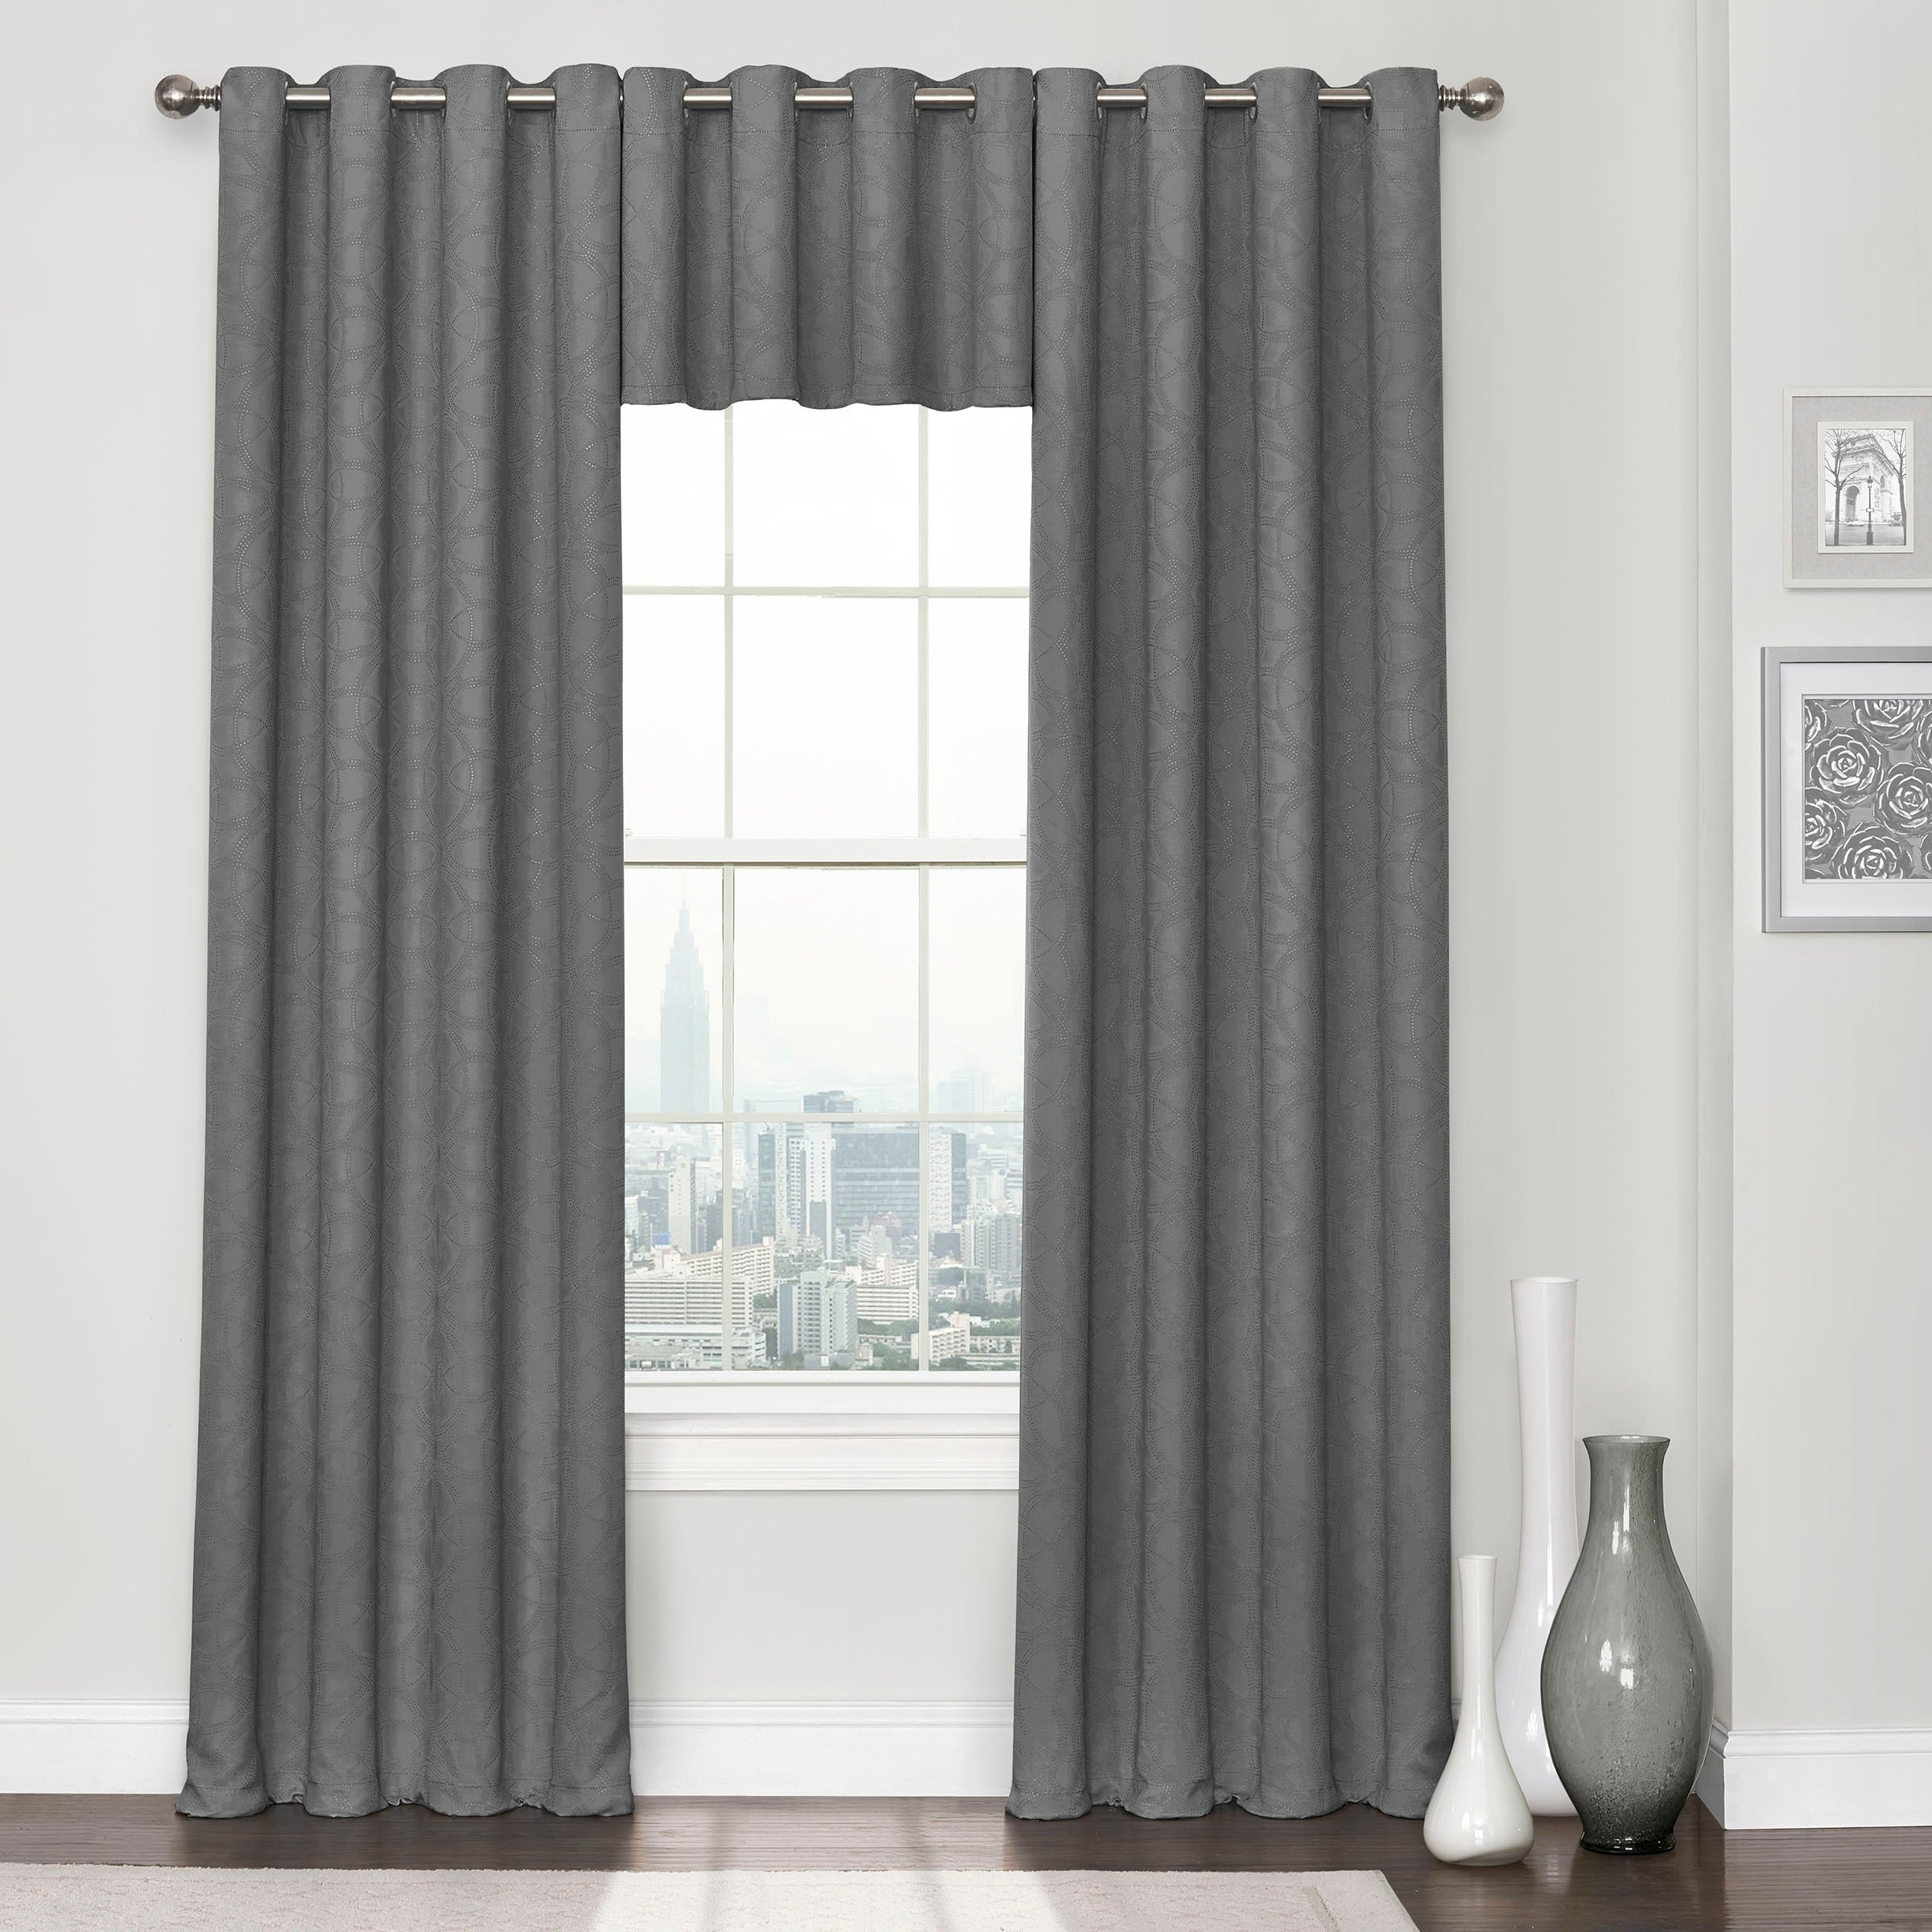 Famous Thermaweave Blackout Curtains Inside Eclipse Kingston Thermaweave Blackout Curtains – N/a (View 7 of 20)